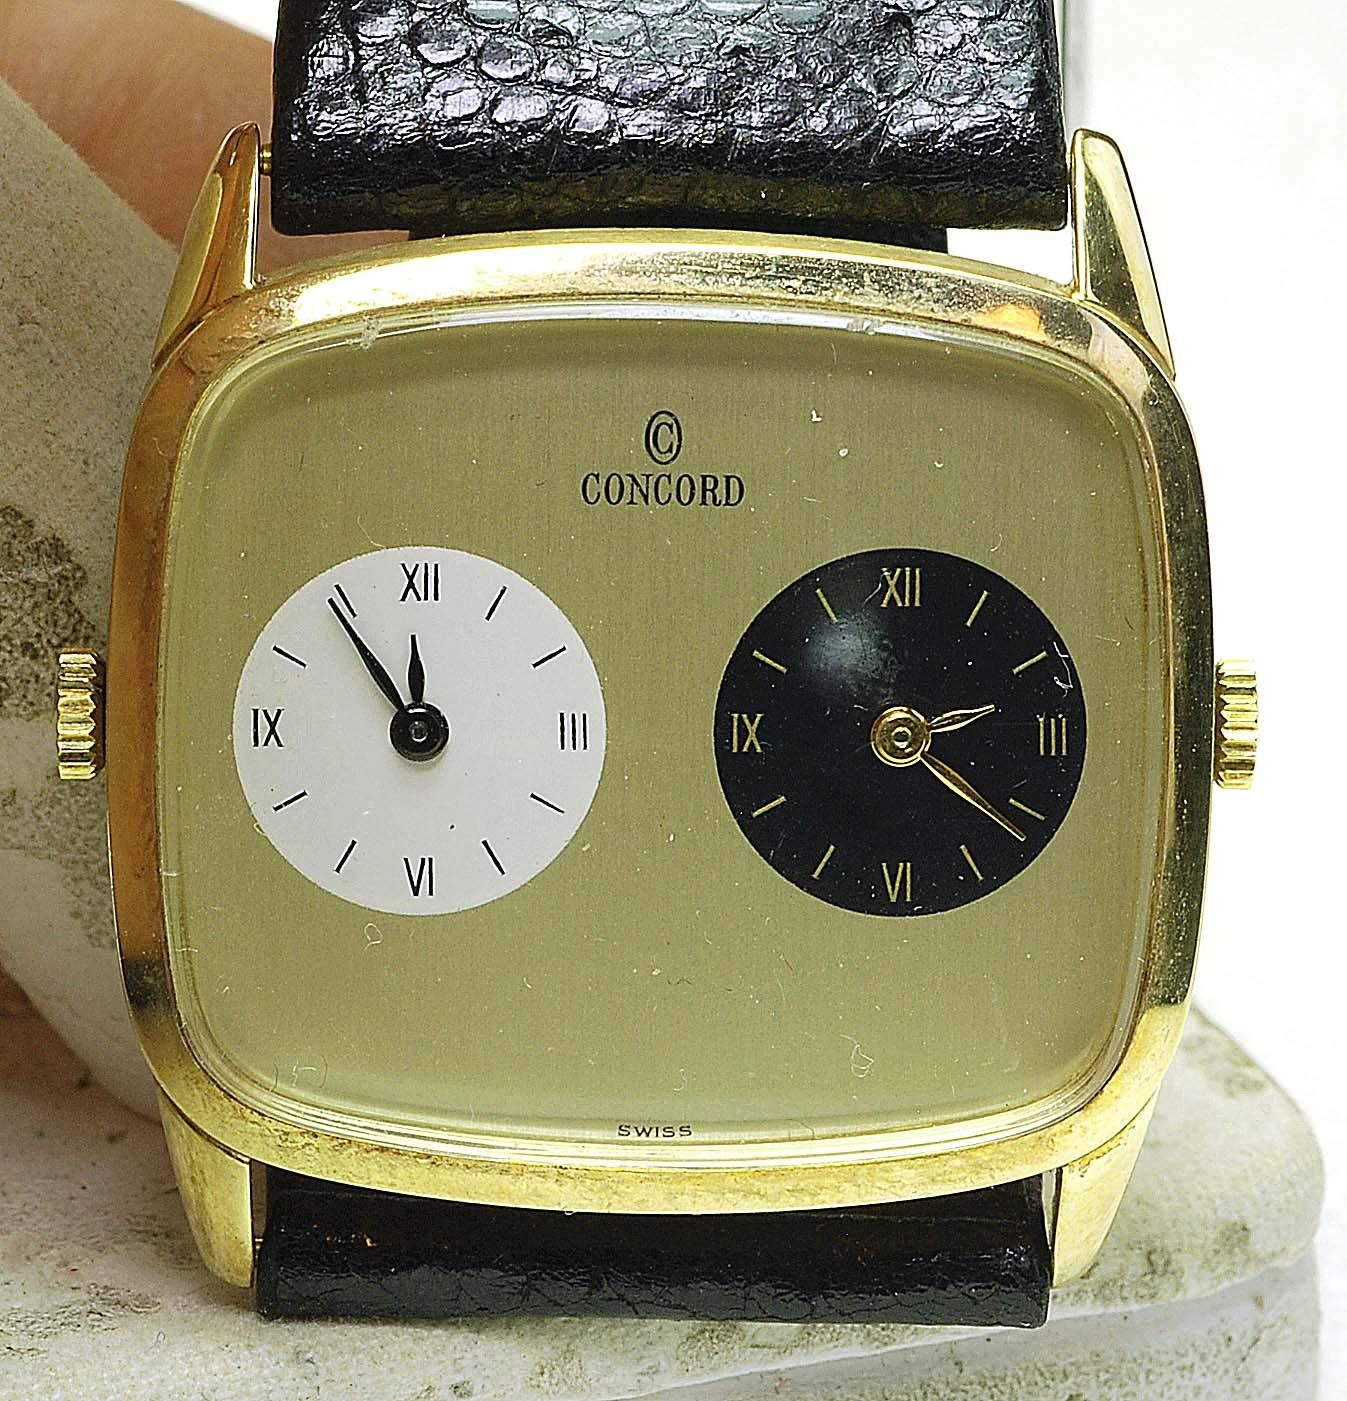 Rare new old stock 14k yellow gold concord dual time zone wrist rare new old stock 14k yellow gold concord dual time zone wrist watch wind up sciox Image collections